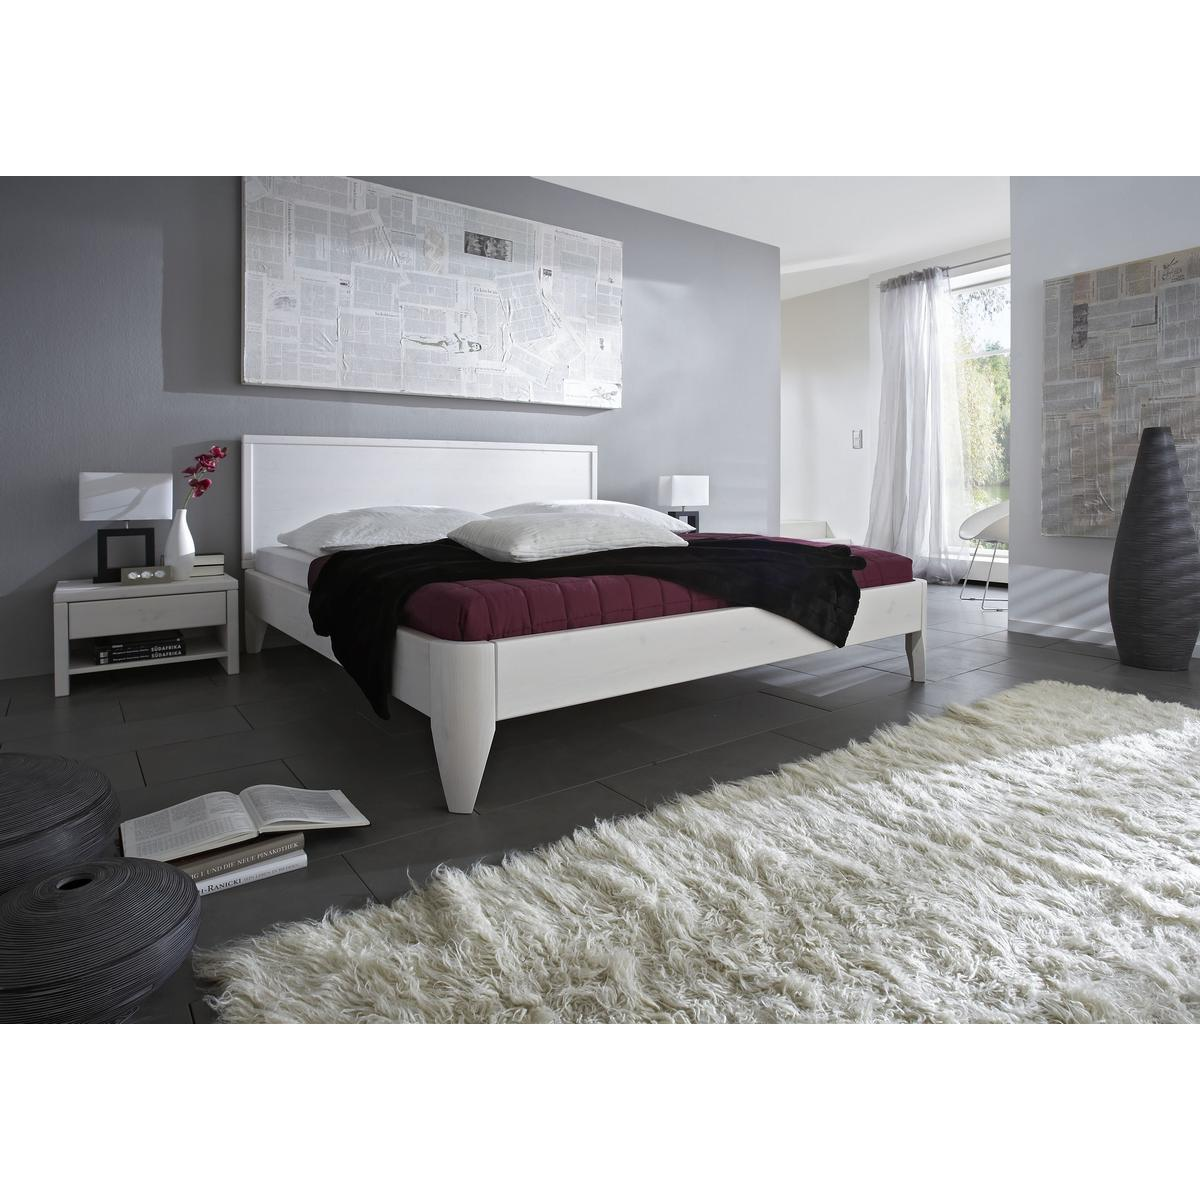 massivholz bett 200x200 xl easy sleep kiefer massiv wei lackiert 9320 72 0. Black Bedroom Furniture Sets. Home Design Ideas